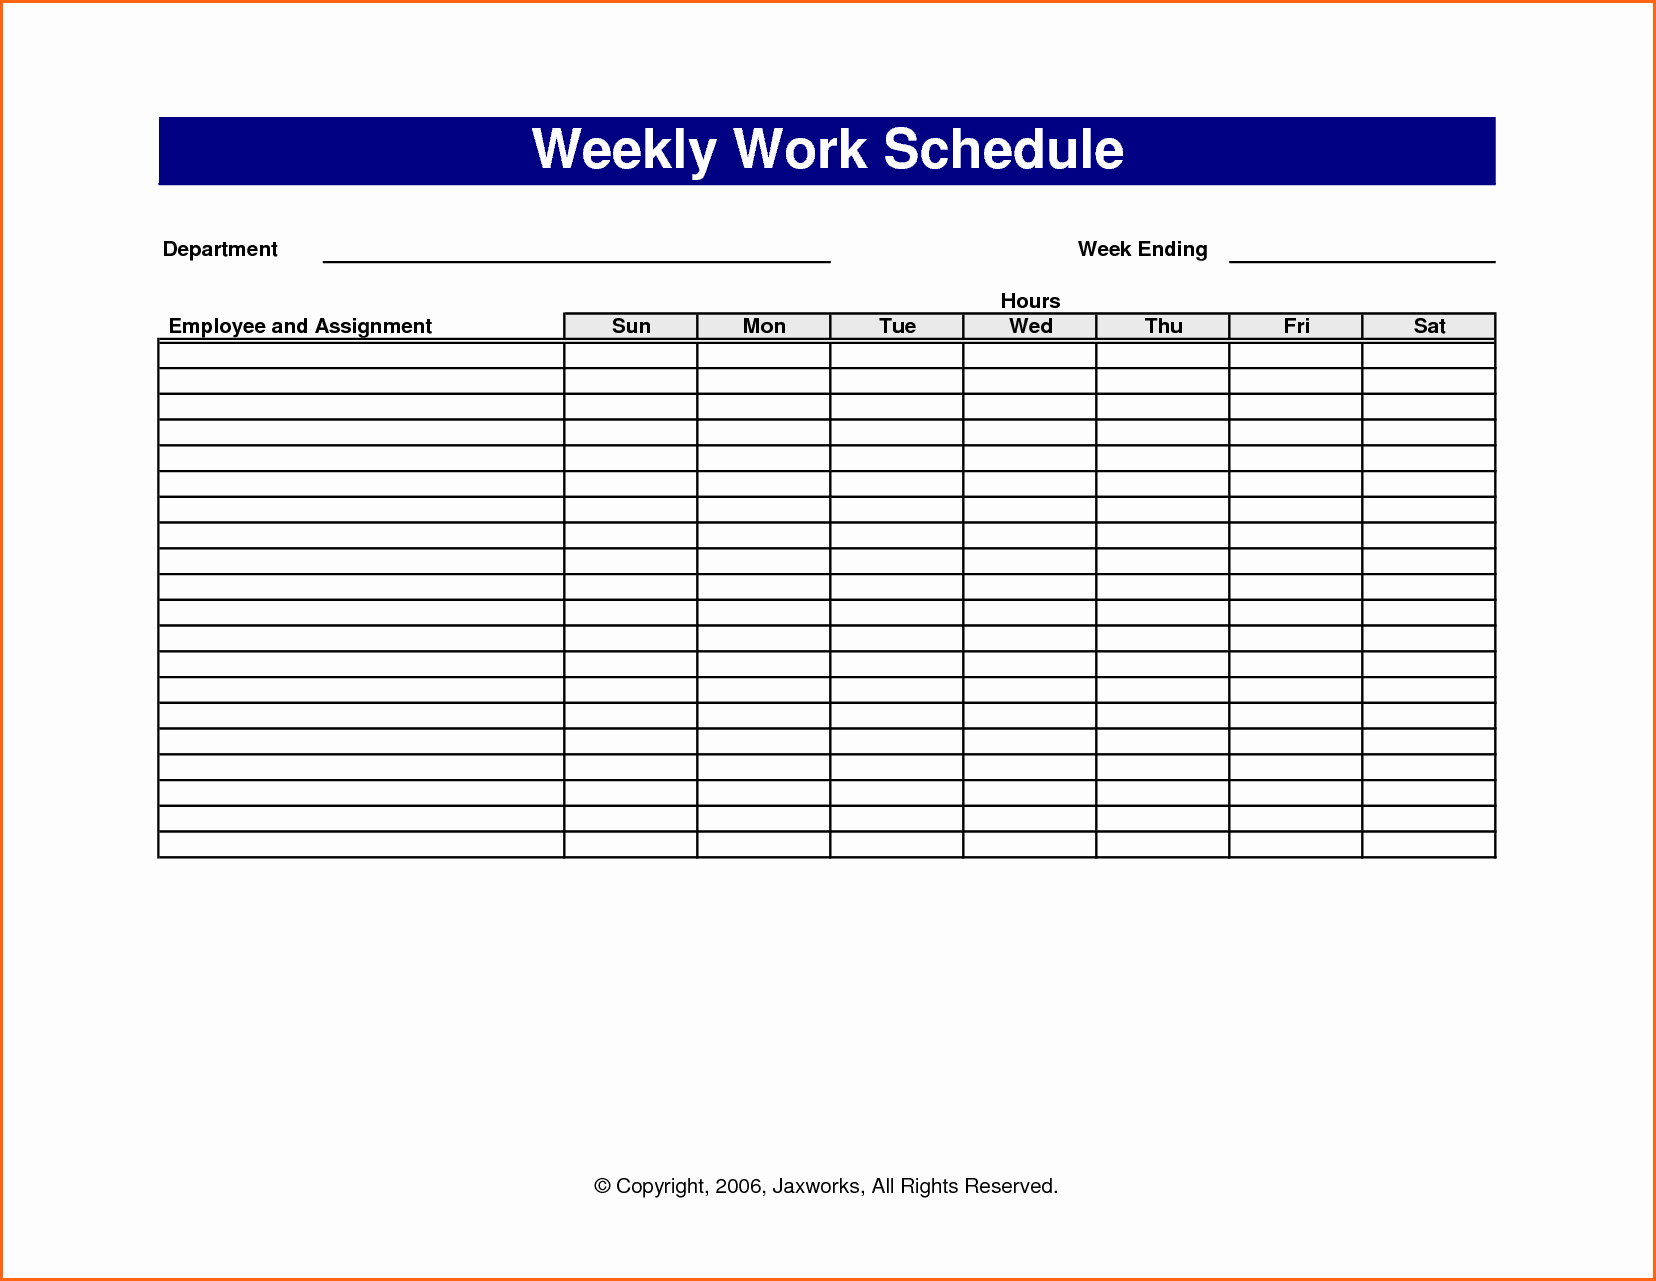 Weekly Work Schedule Template Excel Lovely 6 Weekly Work Schedule Template Excel Bud Template